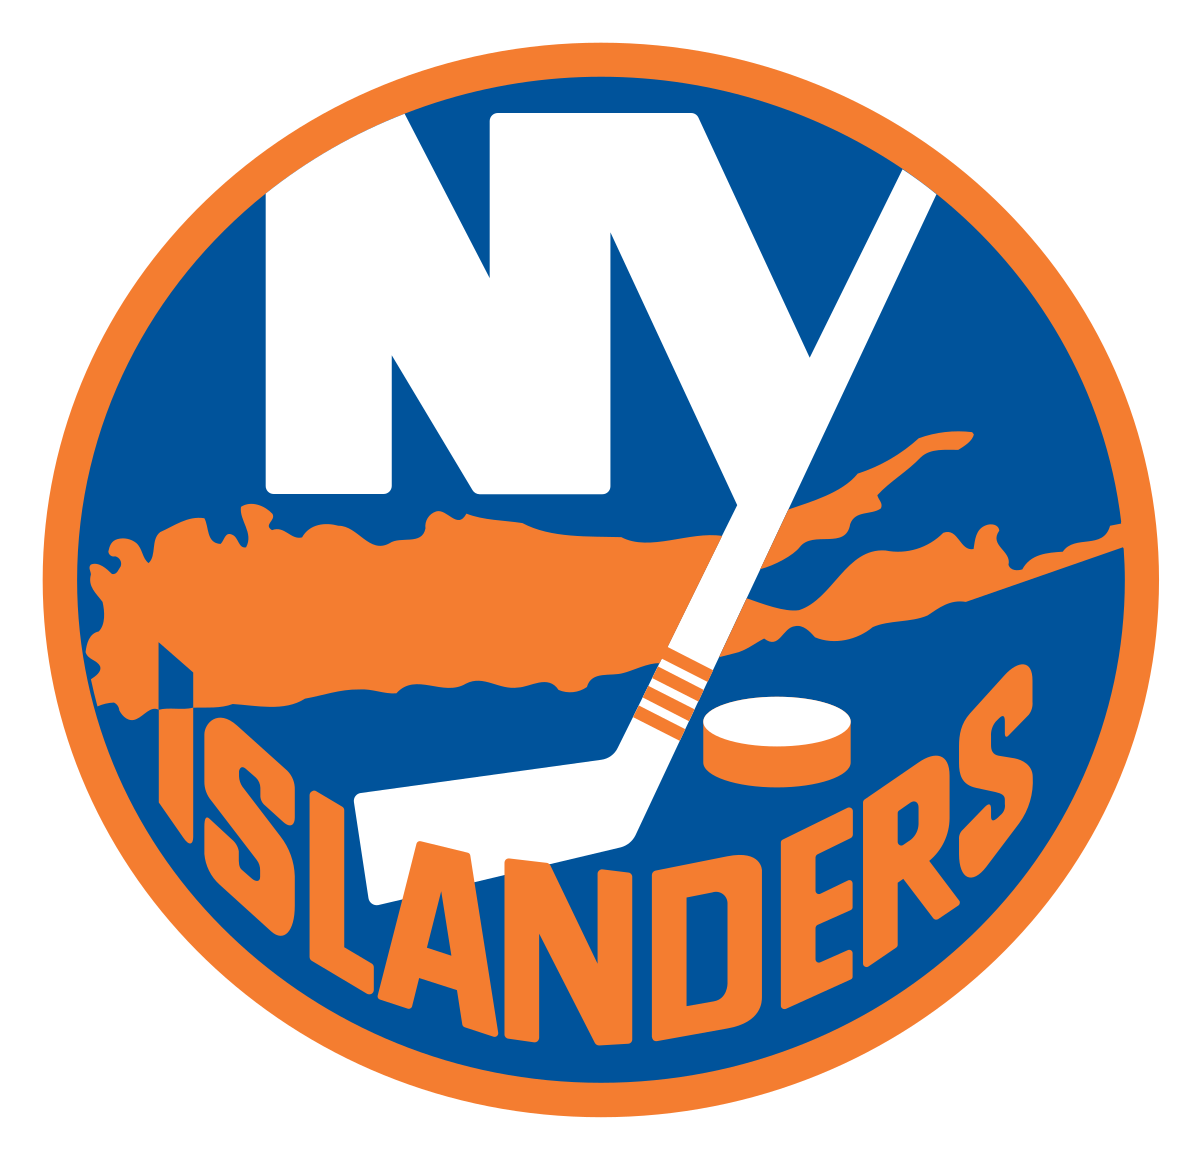 Bossy or decisive clipart image New York Islanders - Wikipedia image